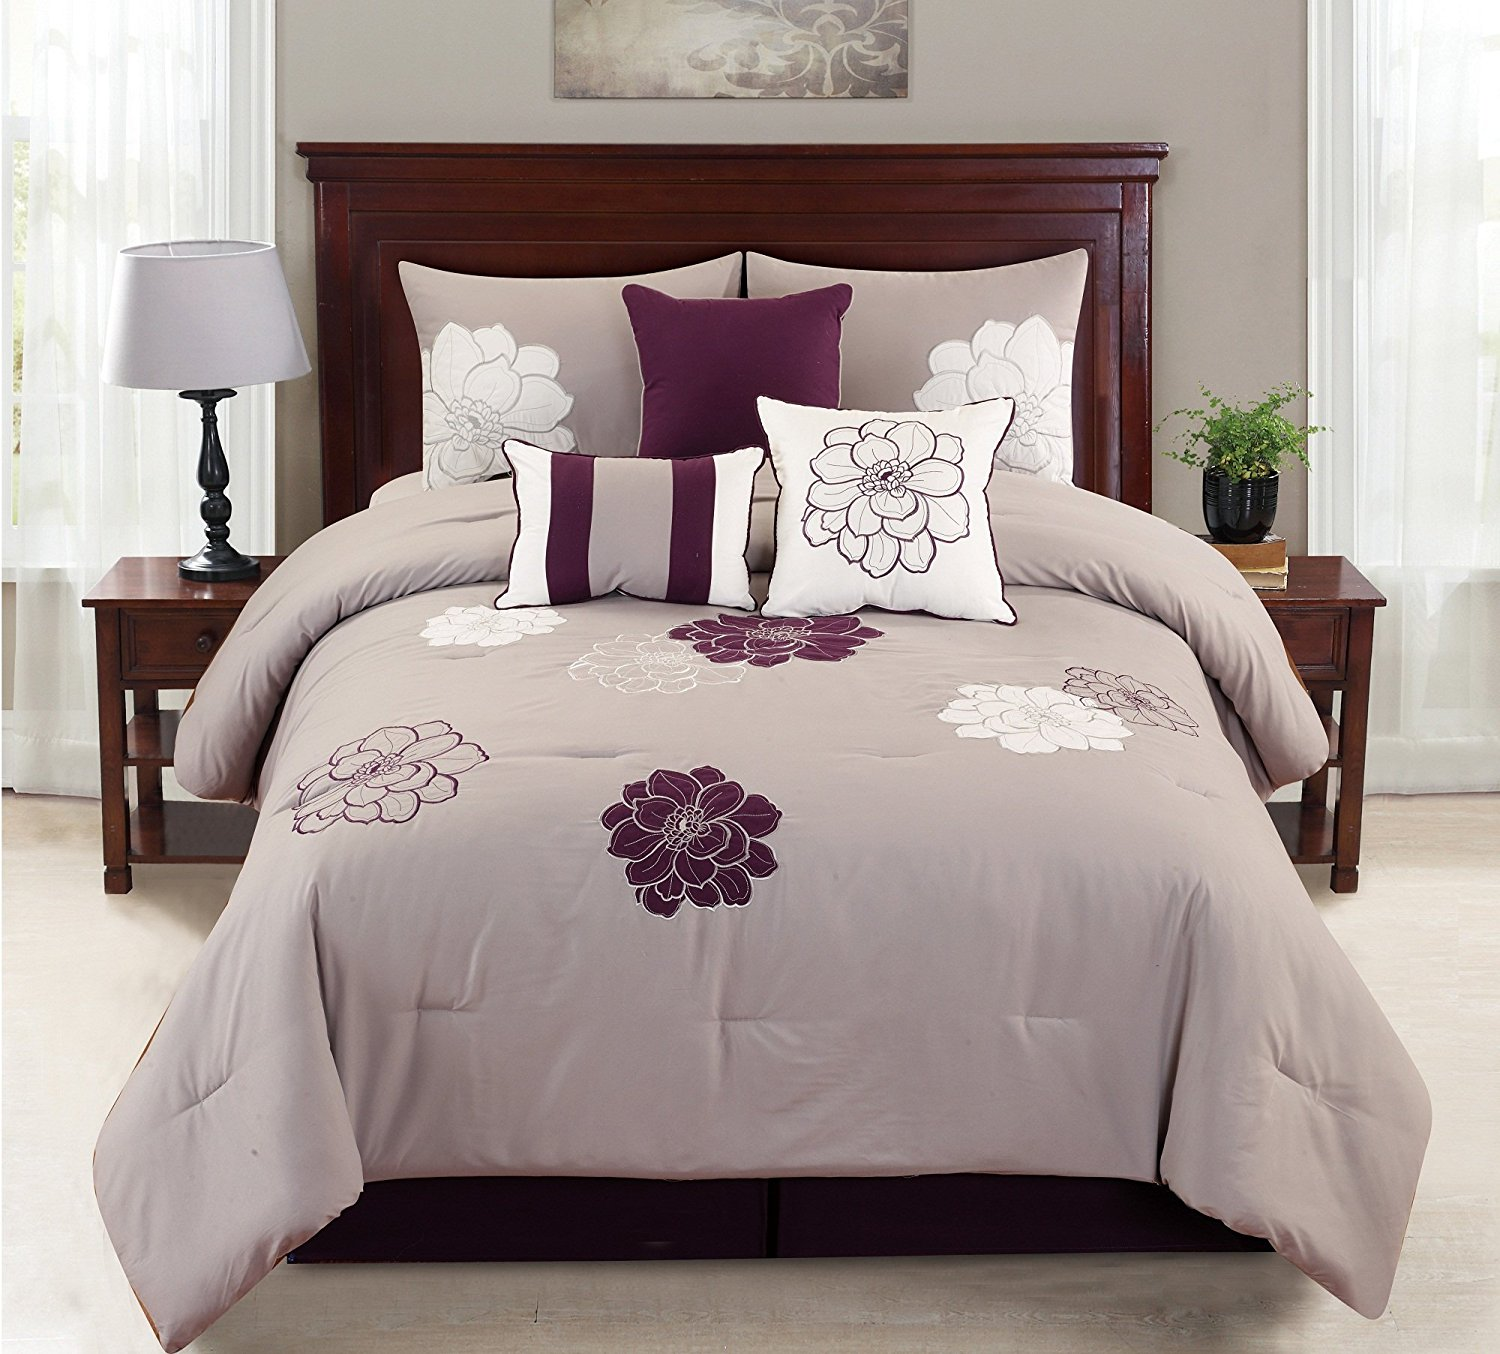 Empire Home Province 7 Piece Purple & Gray Oversized Embroidered Comforter Set (Queen Size)